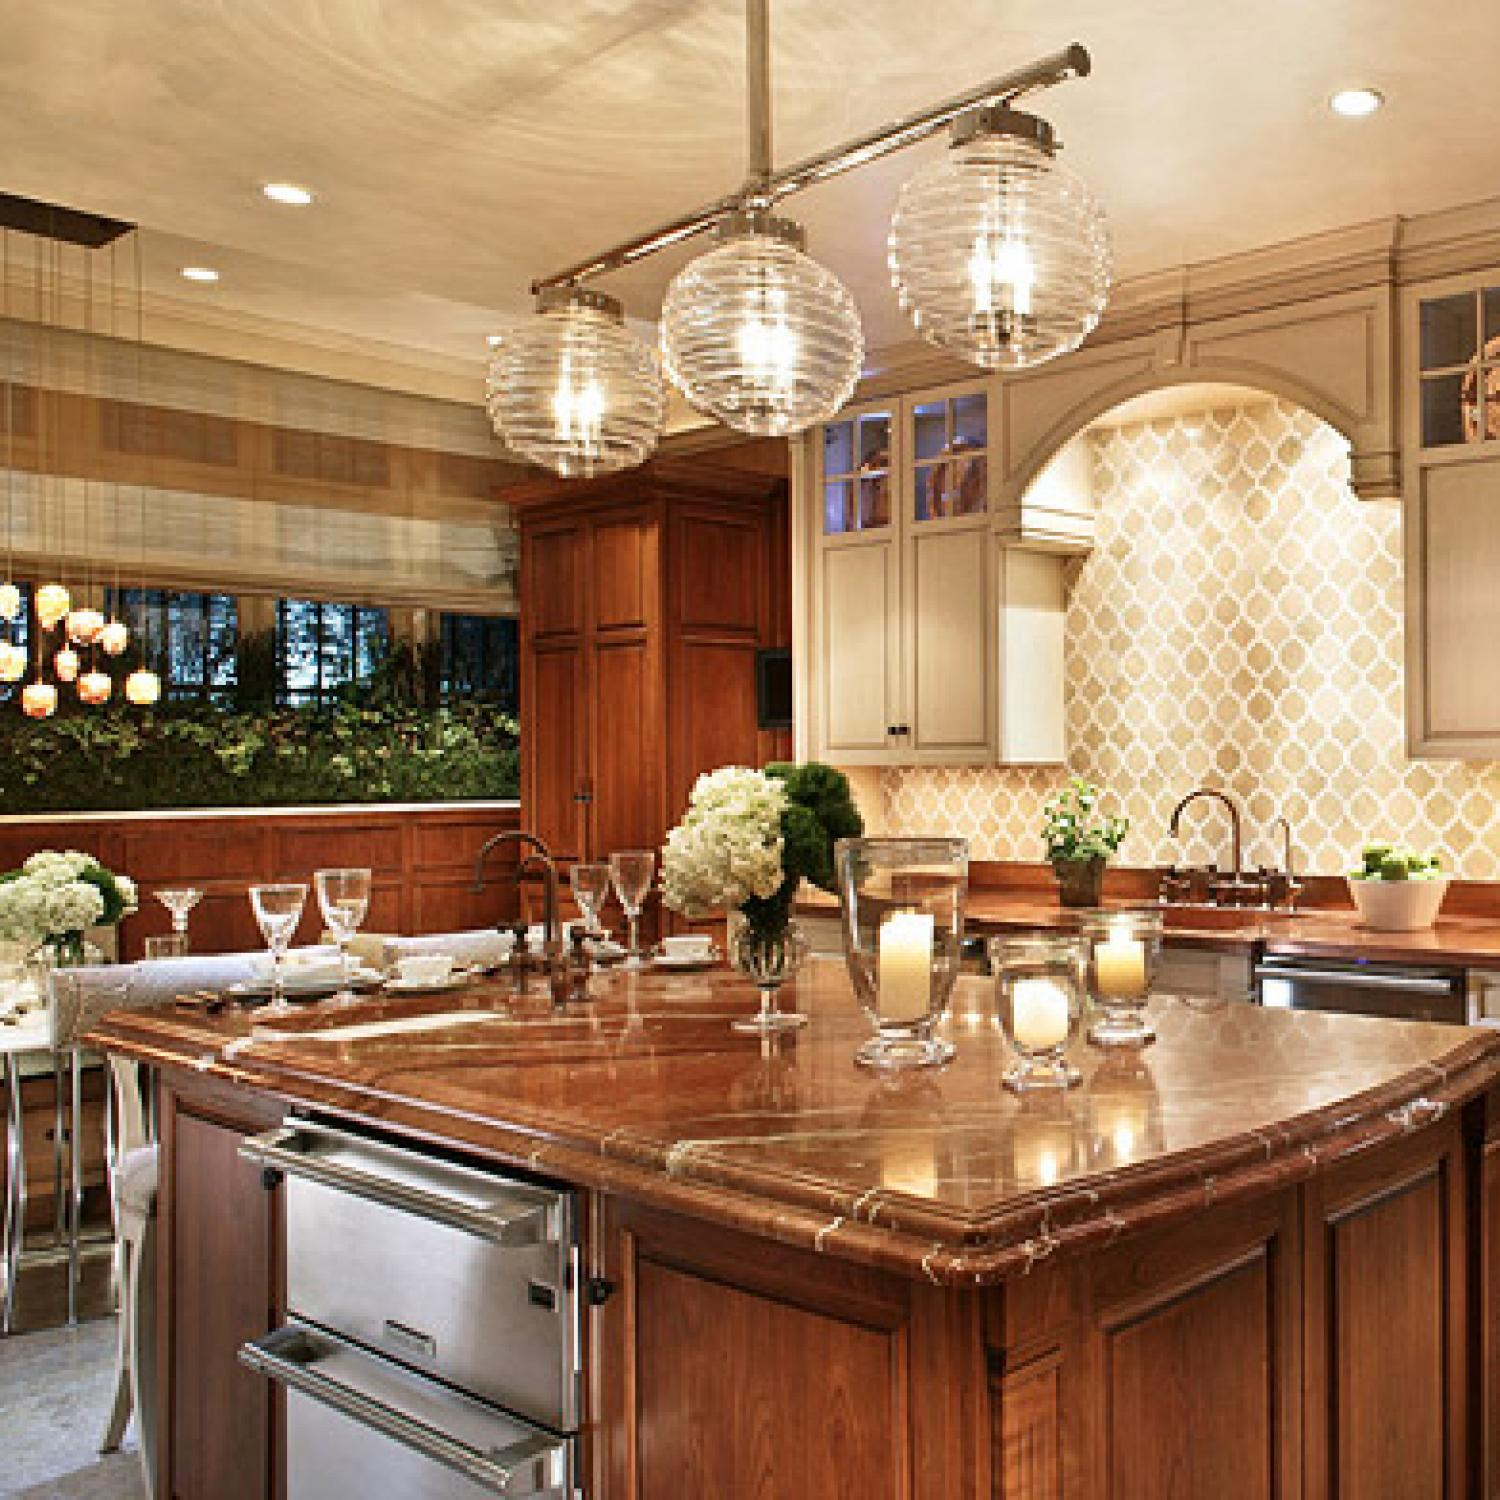 & Stylish Islands for Traditional Kitchens | Traditional Home